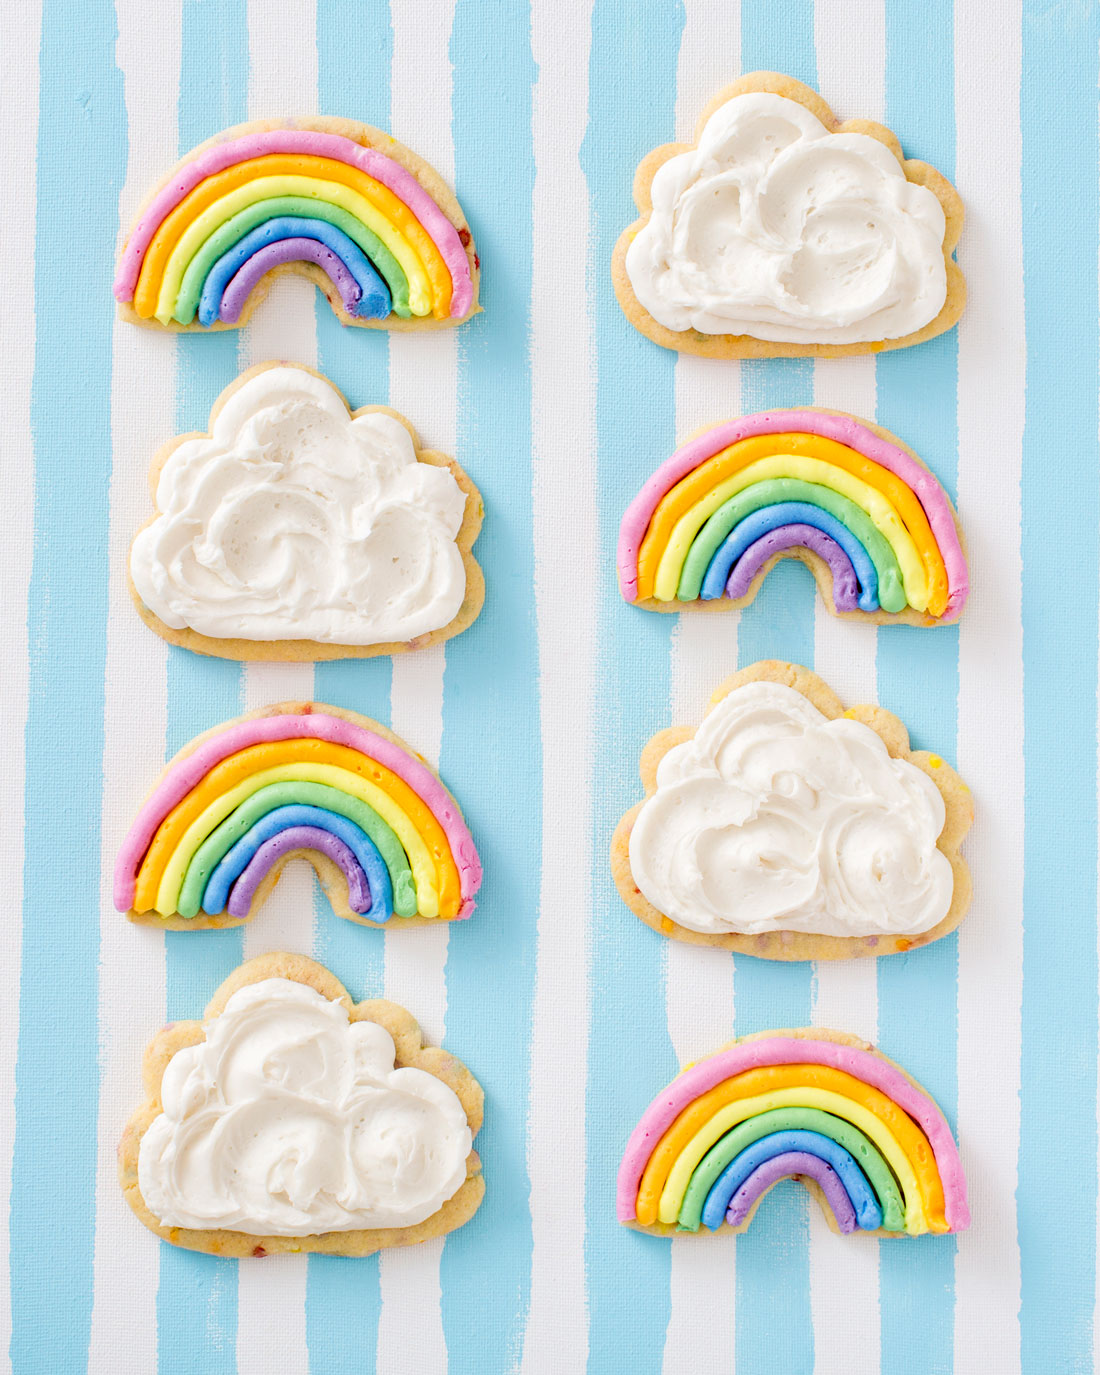 Image of eight Miss Jones Baking Co Chewy and Soft Rainbow and Cloud Frosted Confetti Sugar Cookies